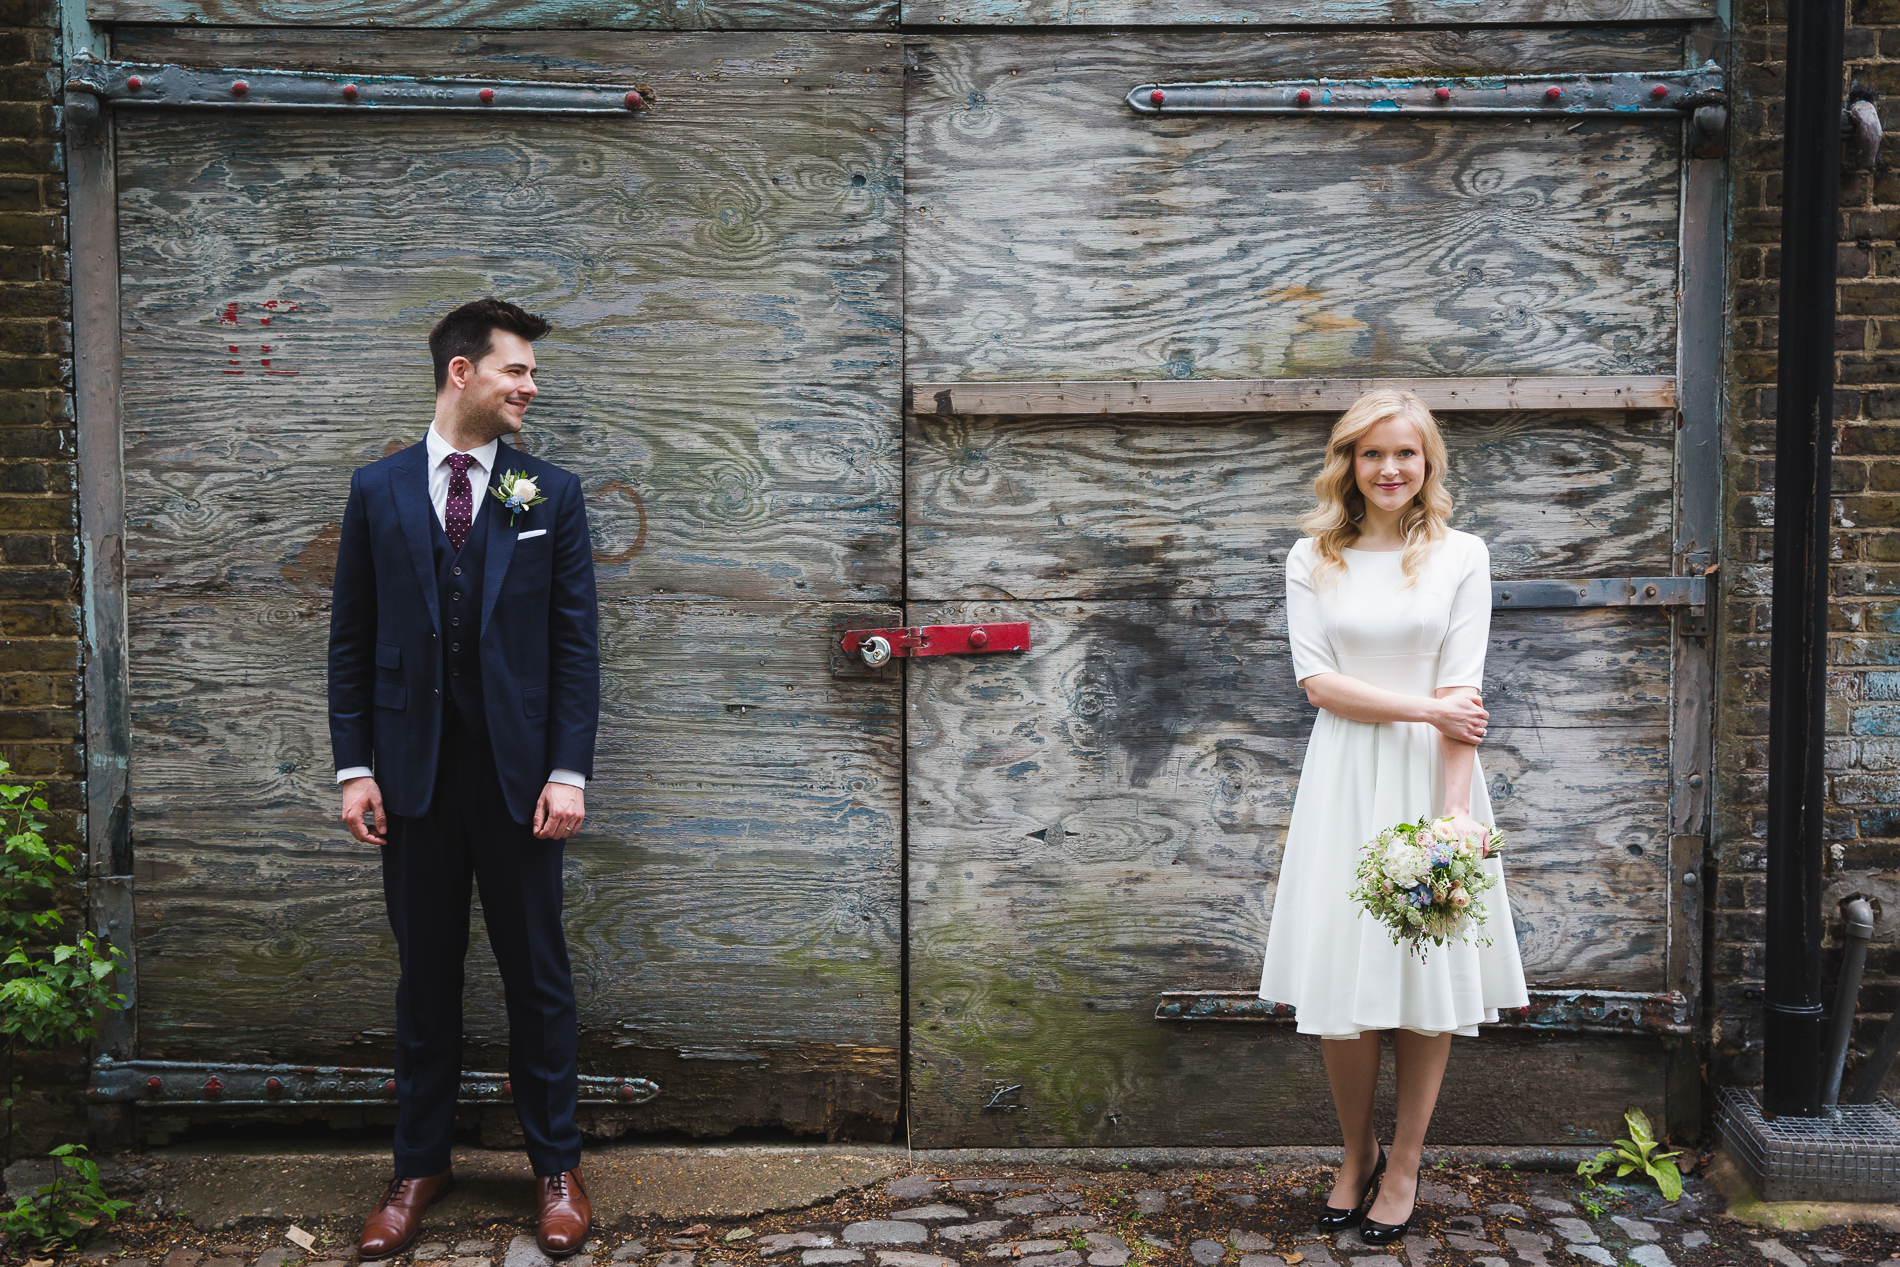 London Elopement Couple Urban Portrait | a knee-length wedding dress makes a stark contrast to the urban terrain